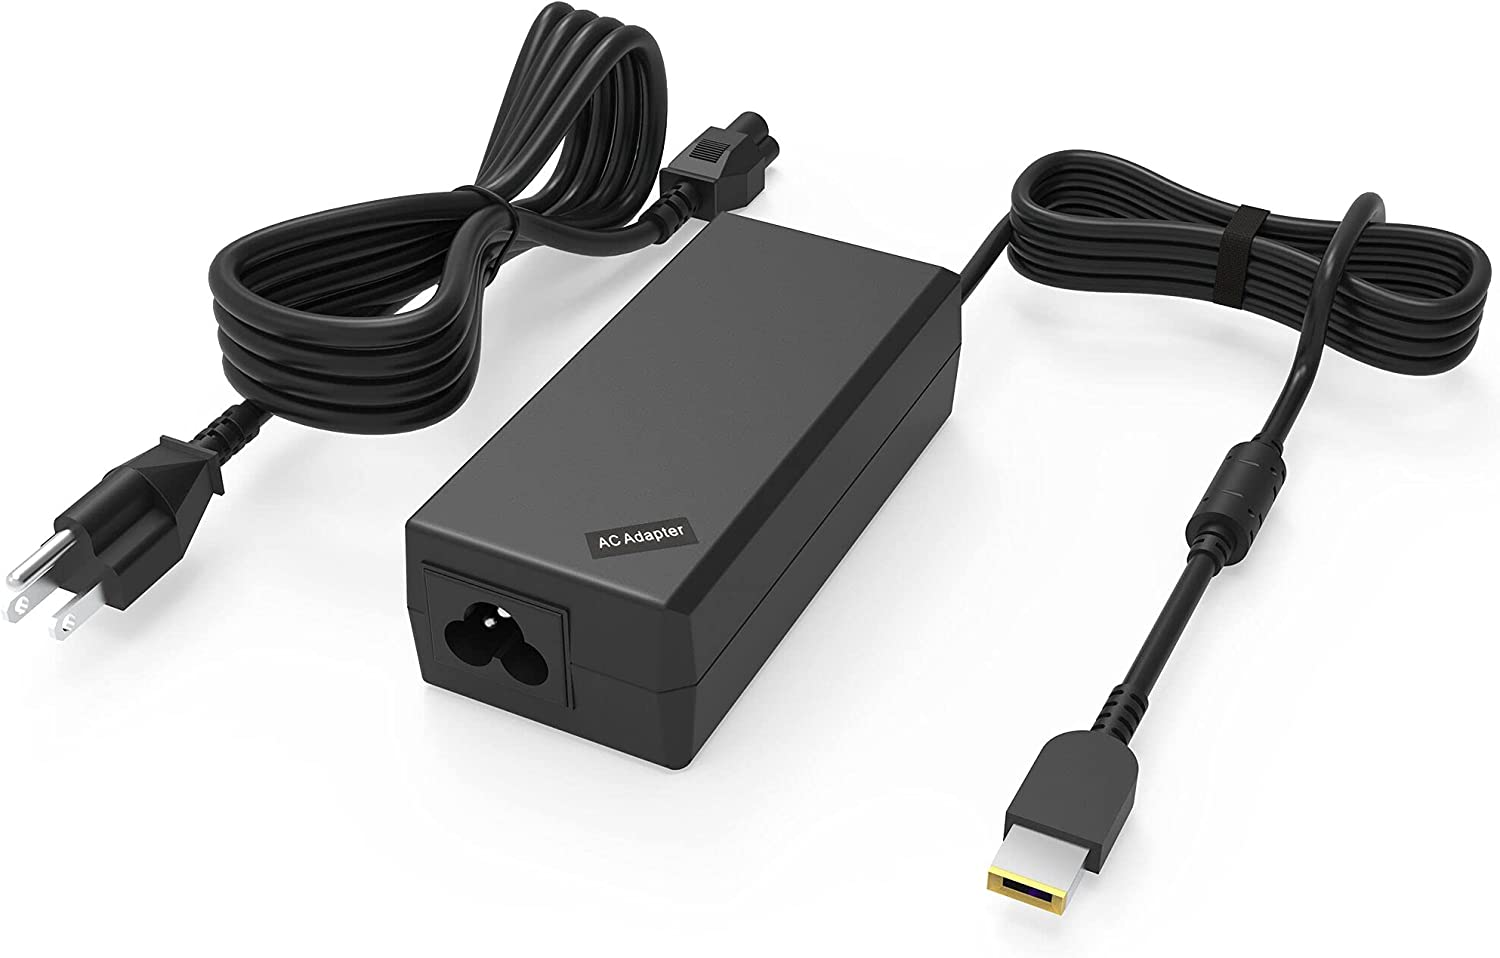 20V 4.5A 90W AC Adapter Lenovo Compatible Charger Many Max 43% OFF popular brands Thinkpad with